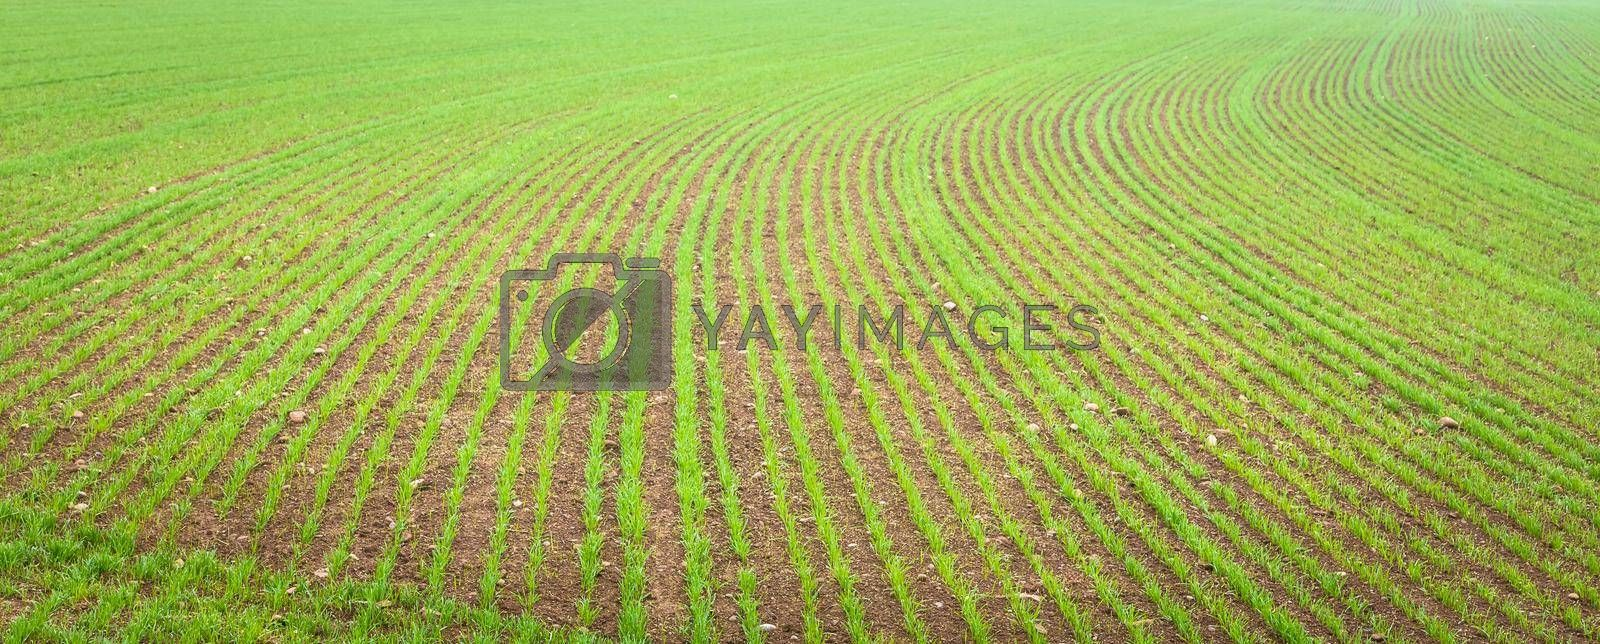 Natural environment background useful for concepts related to country and agriculture. Farmland detail with growing cultivation.